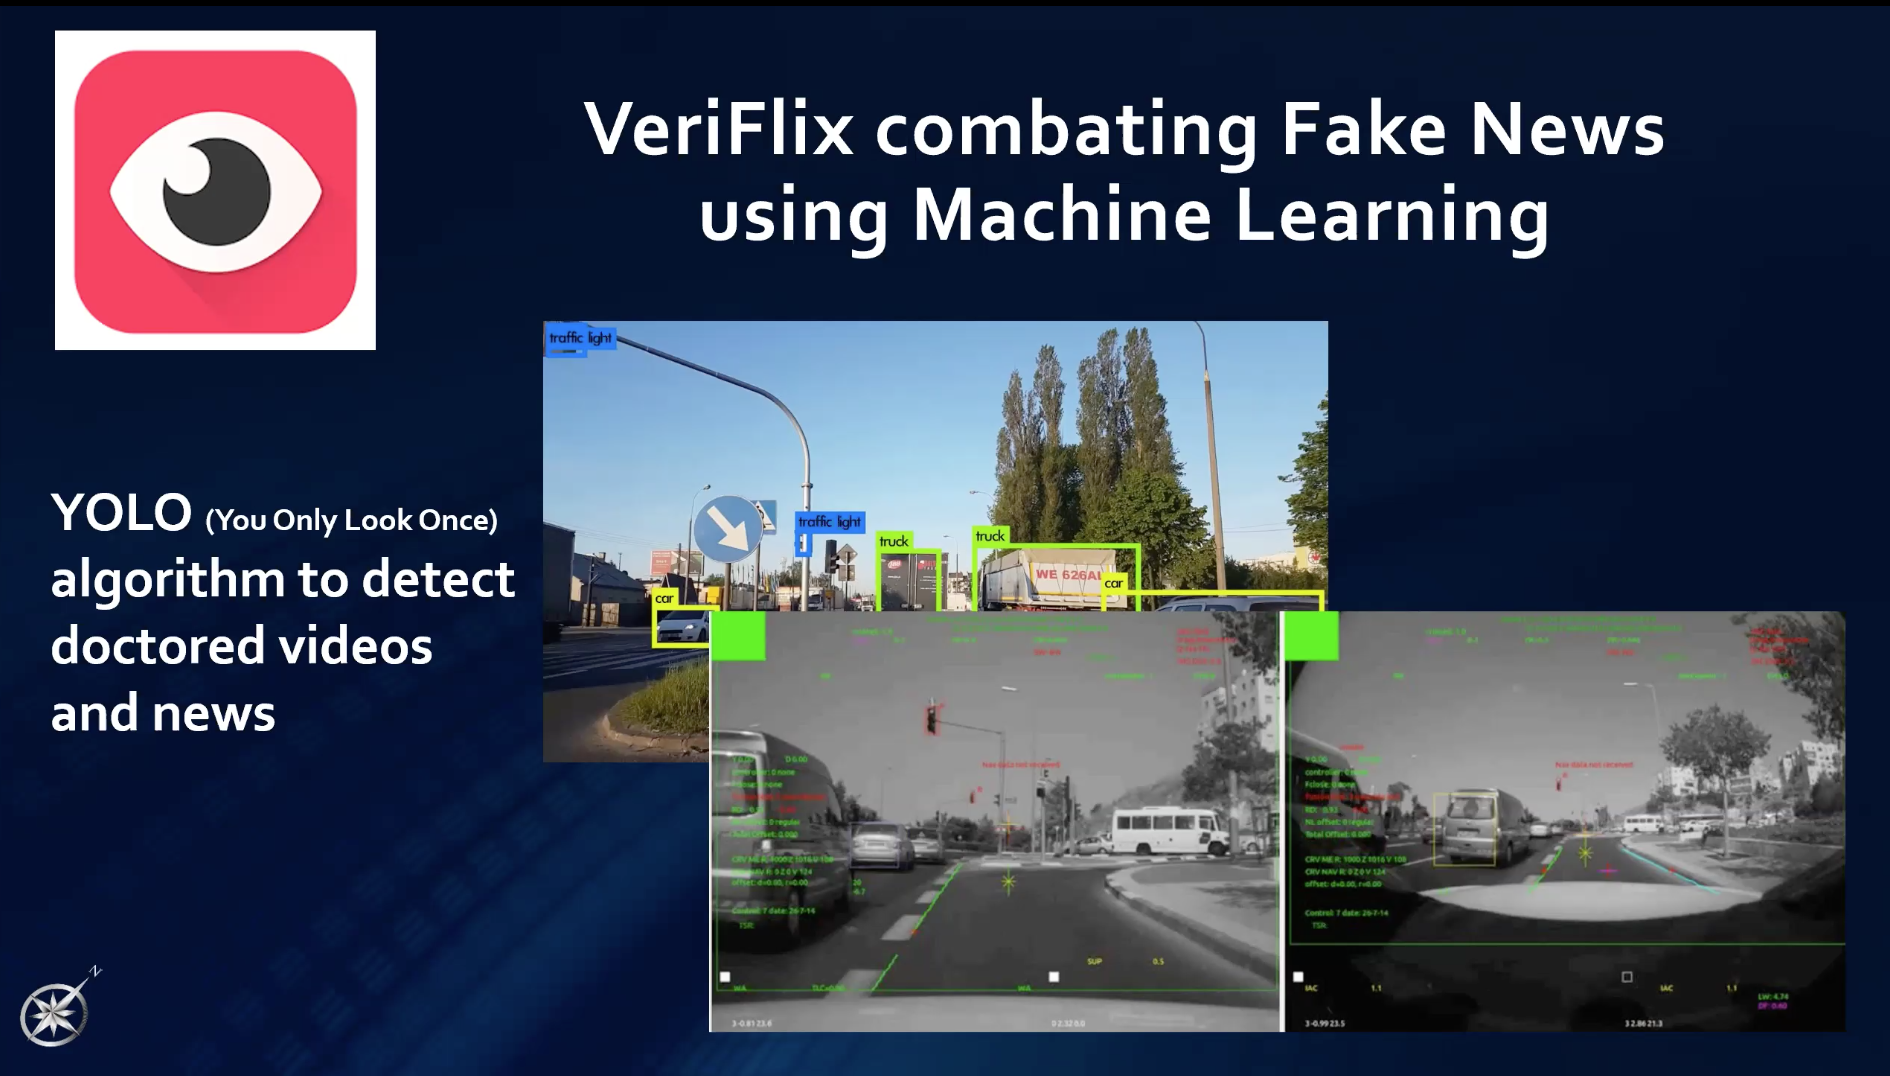 Image of veriflix app detecting fake image and news.